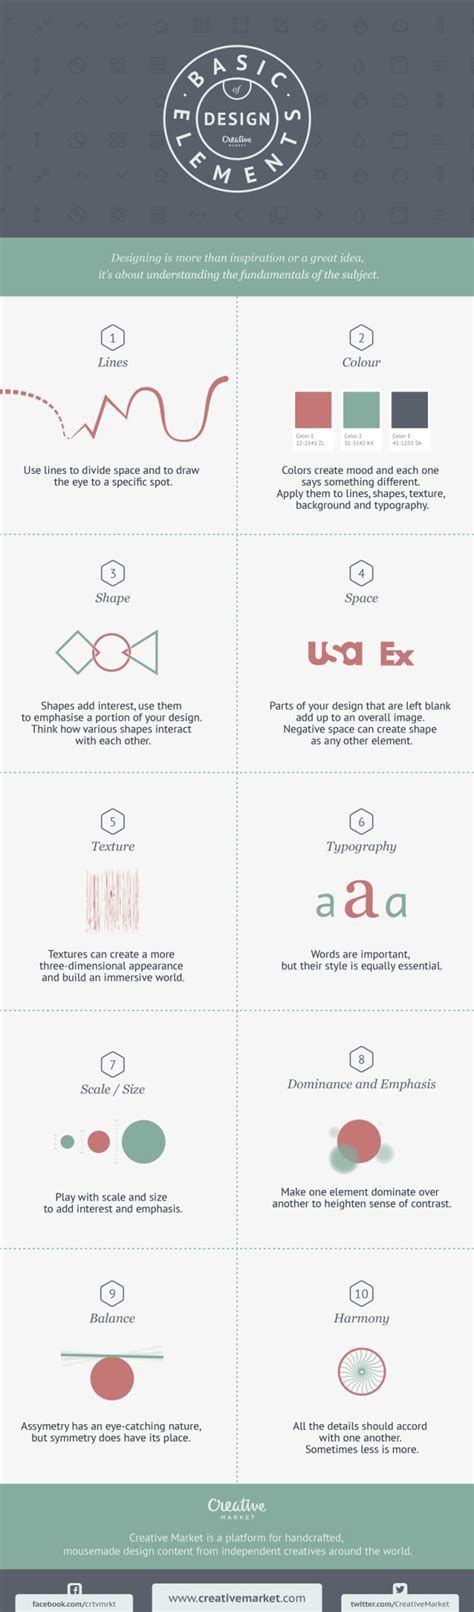 layout basics graphic design this graphic teaches you the basic elements of good design